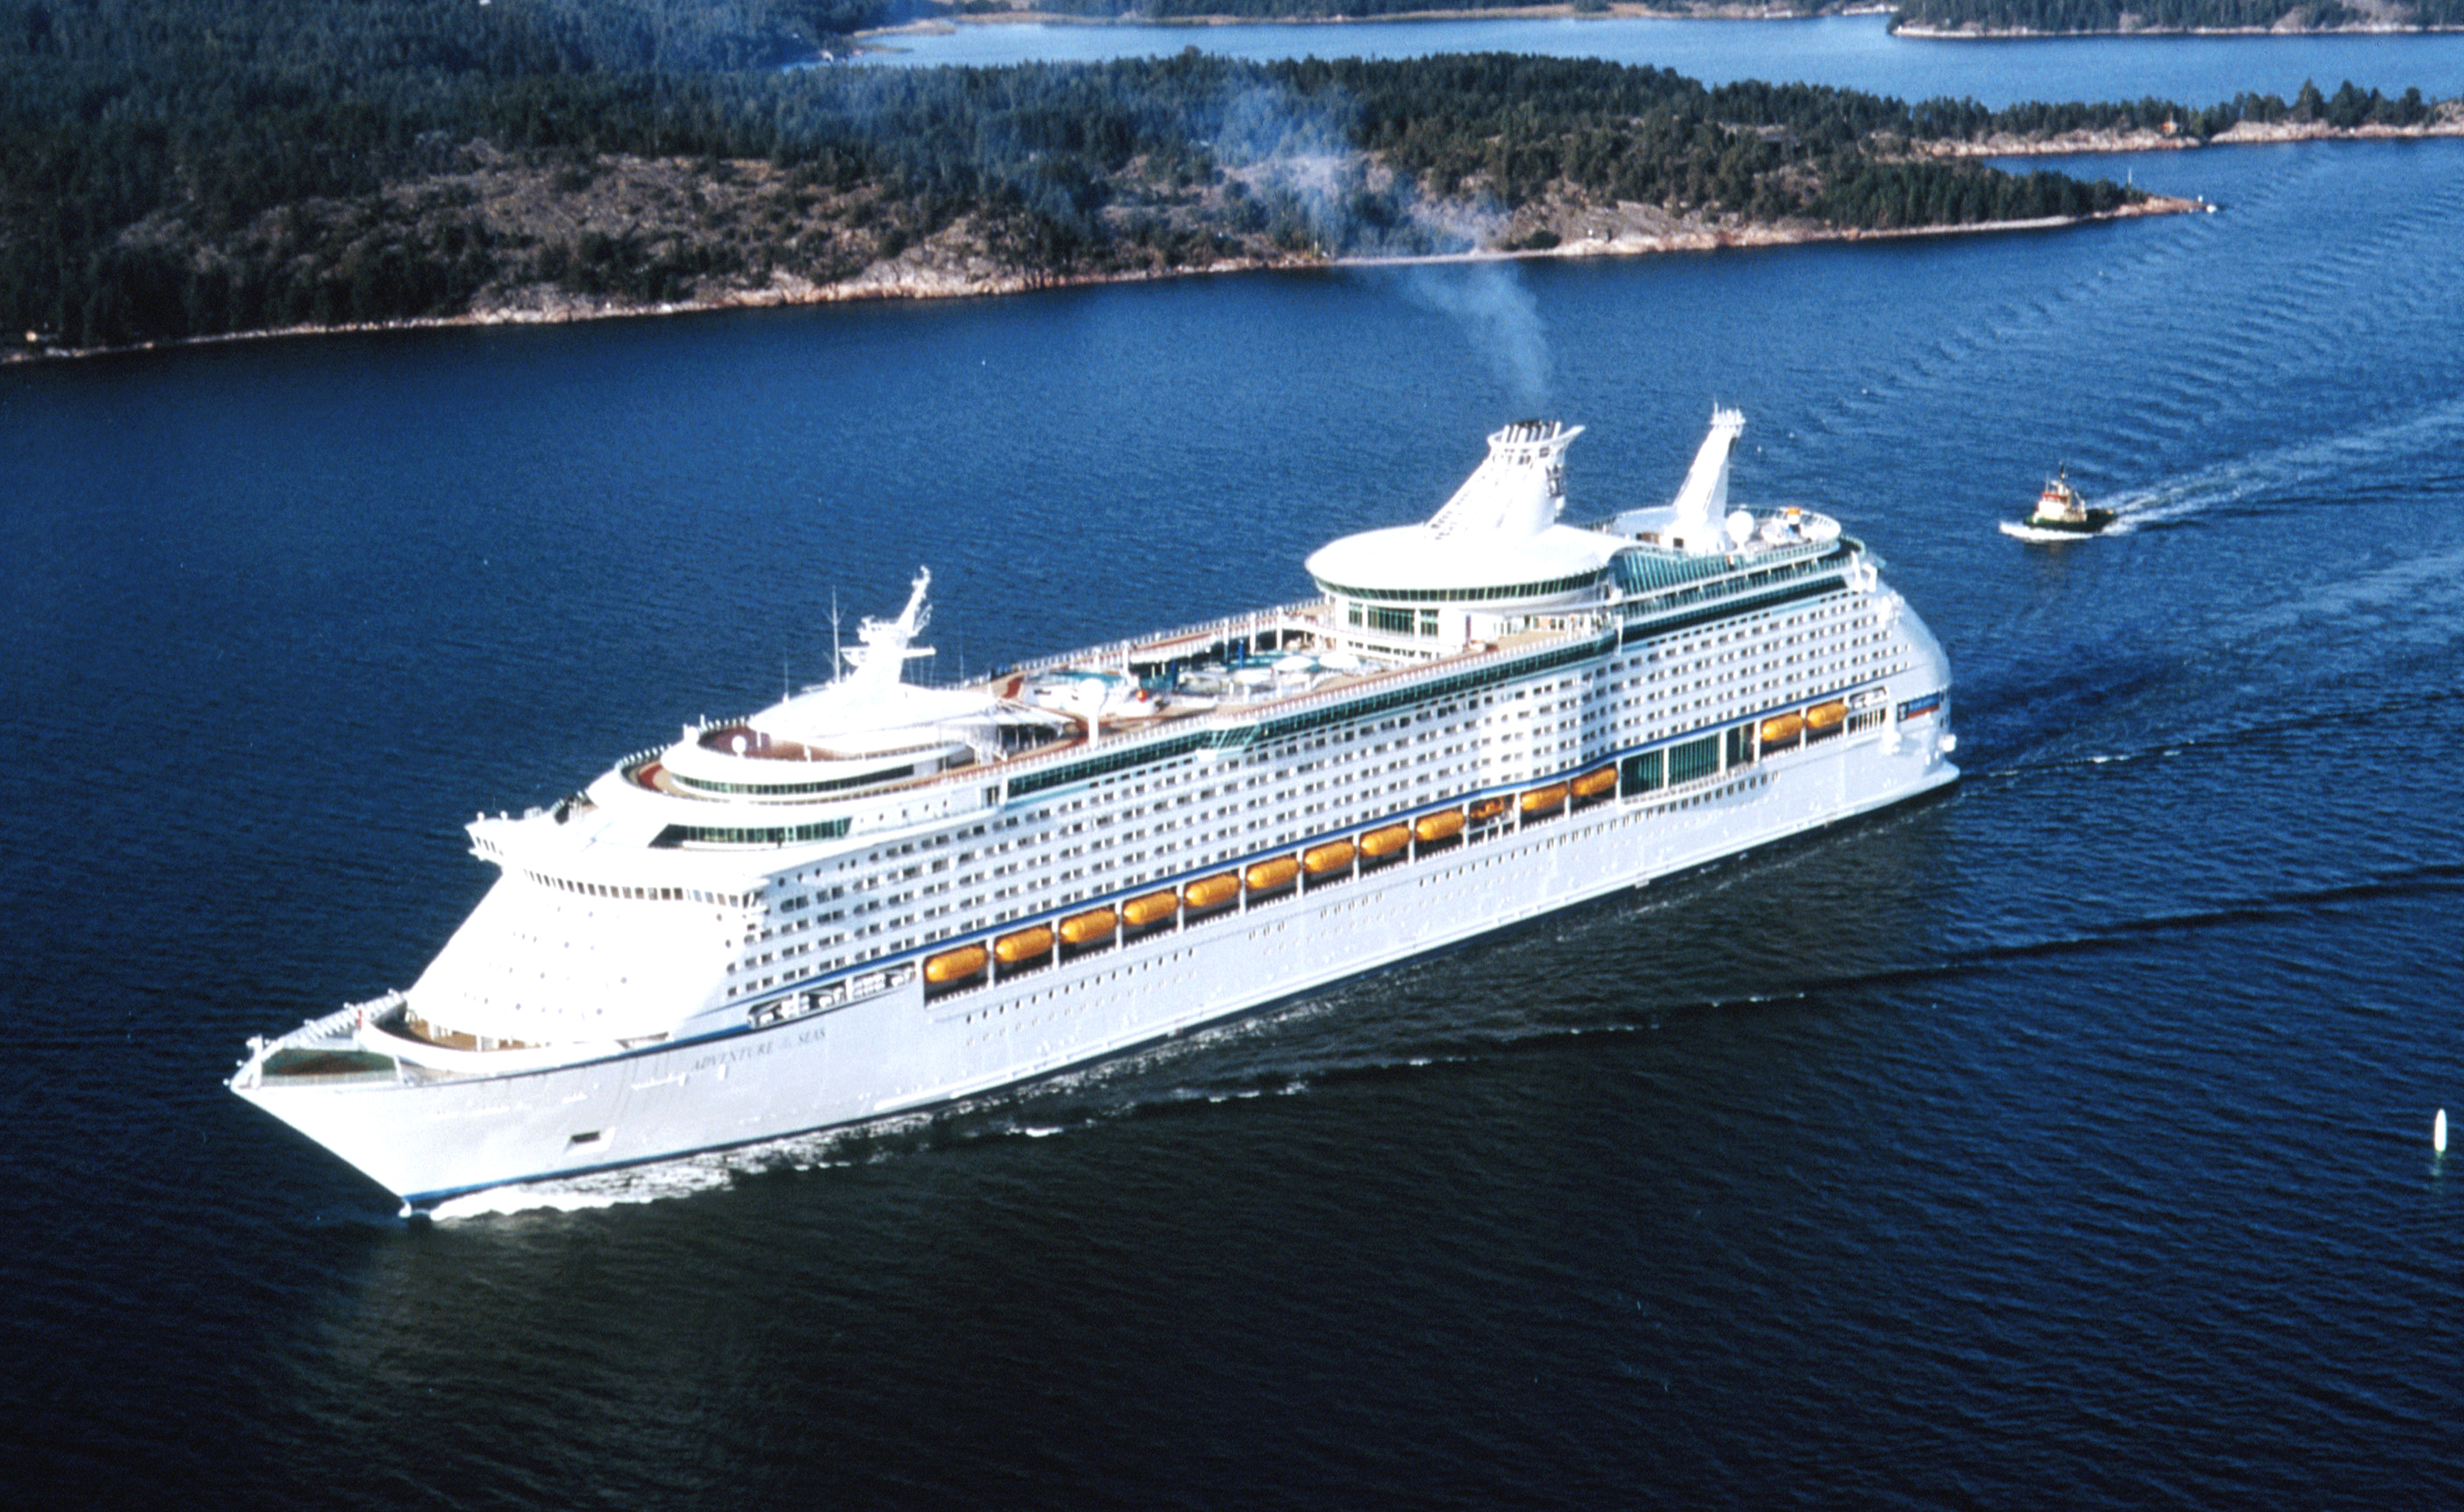 Discount Cruises On The World's Most Popular Cruise Lines! Look no further for the cheapest cruise deals on top destinations including the Caribbean, Mexico, and more.